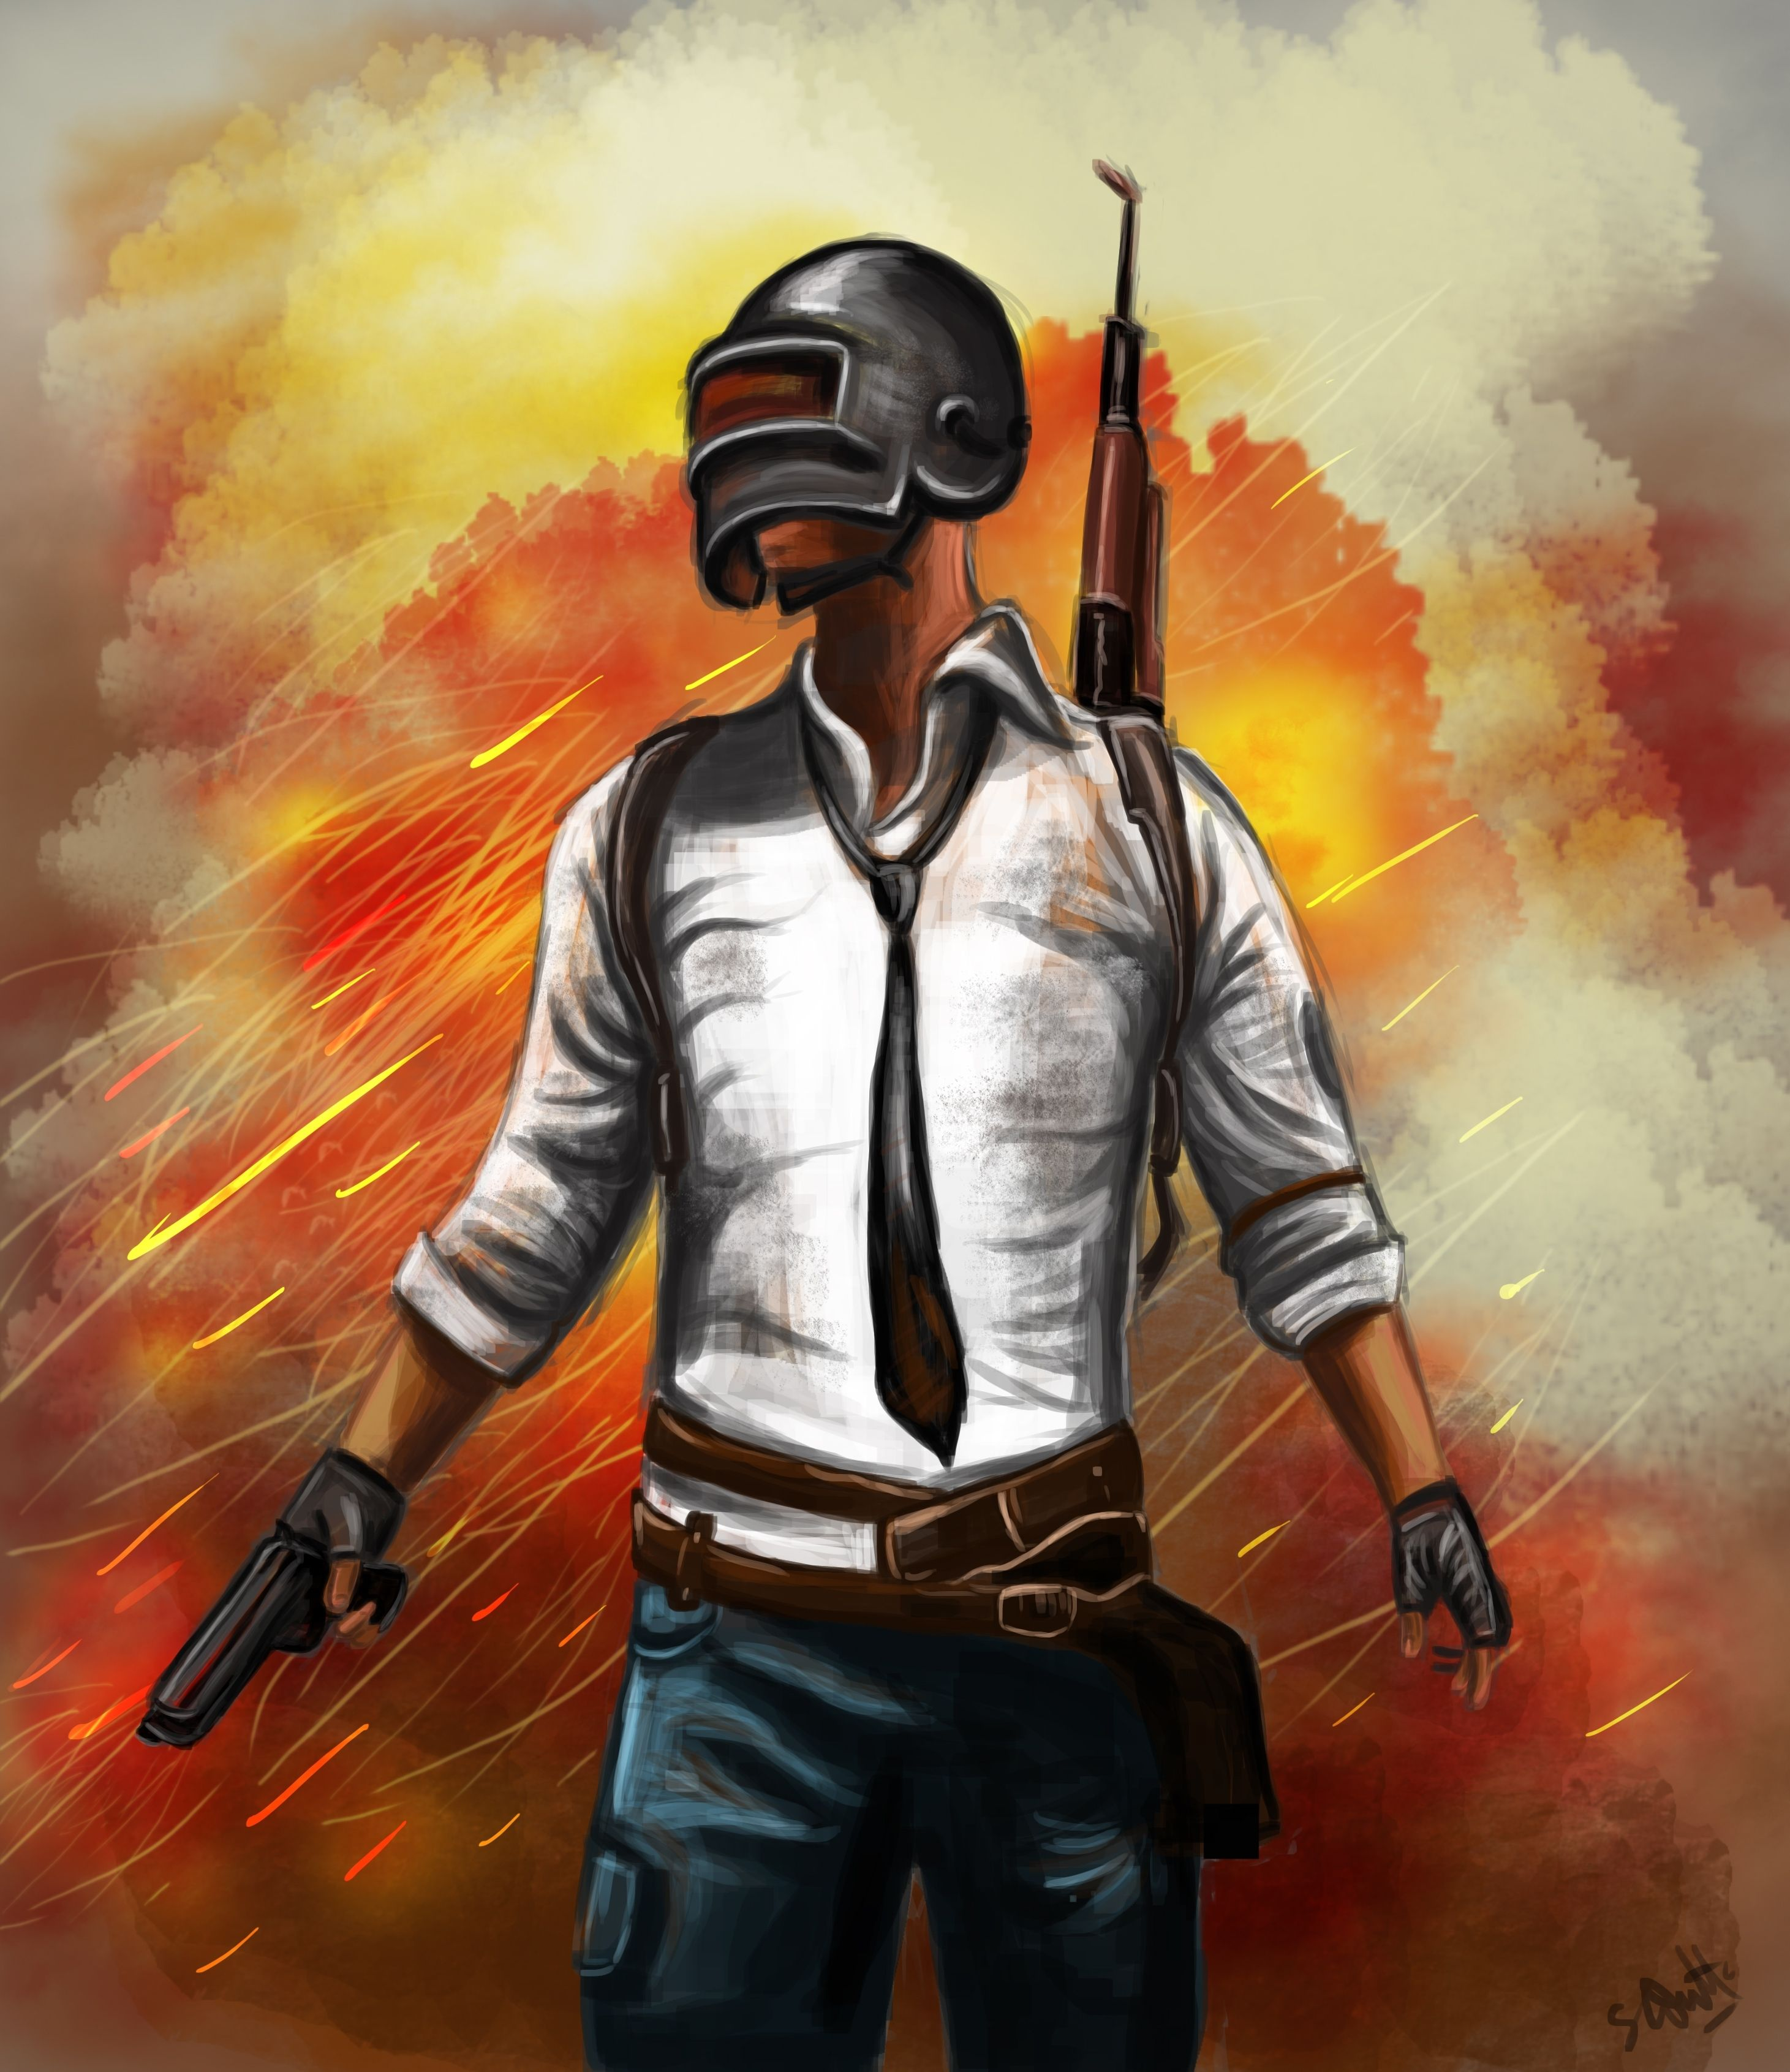 PUBG HD Wallpapers - Top Free PUBG HD Backgrounds ...